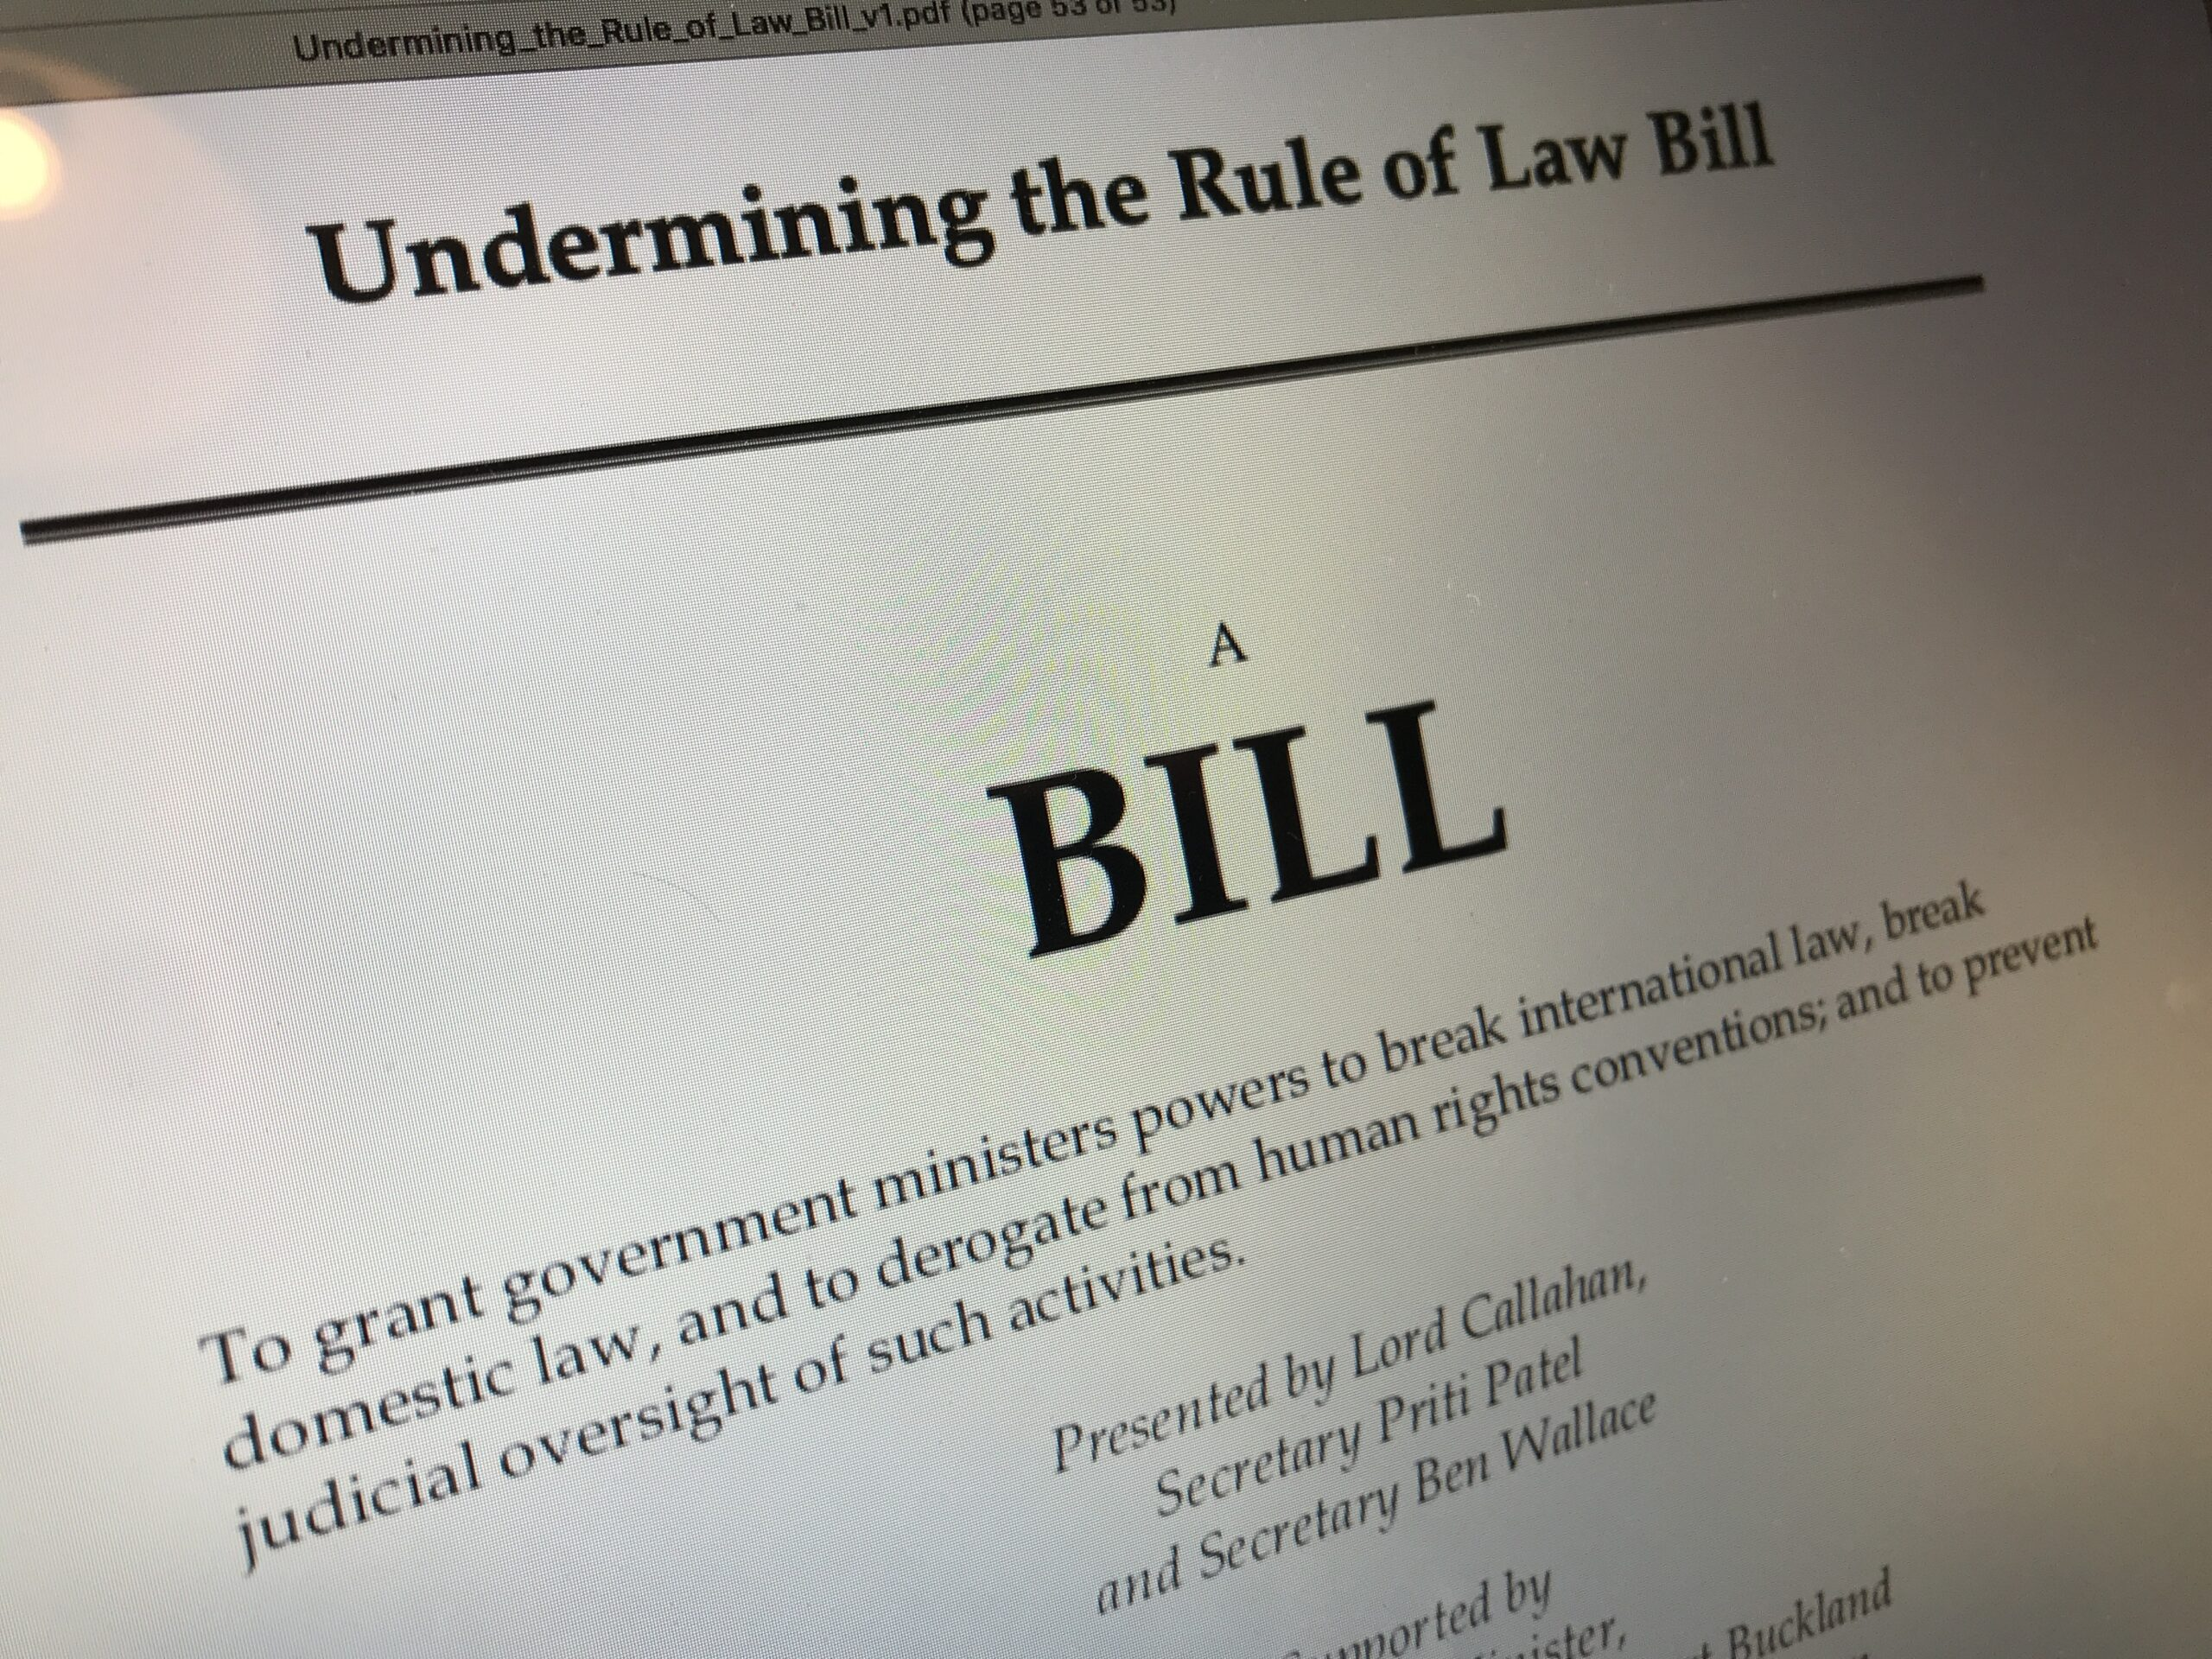 Undermining the Rule of Law Bill